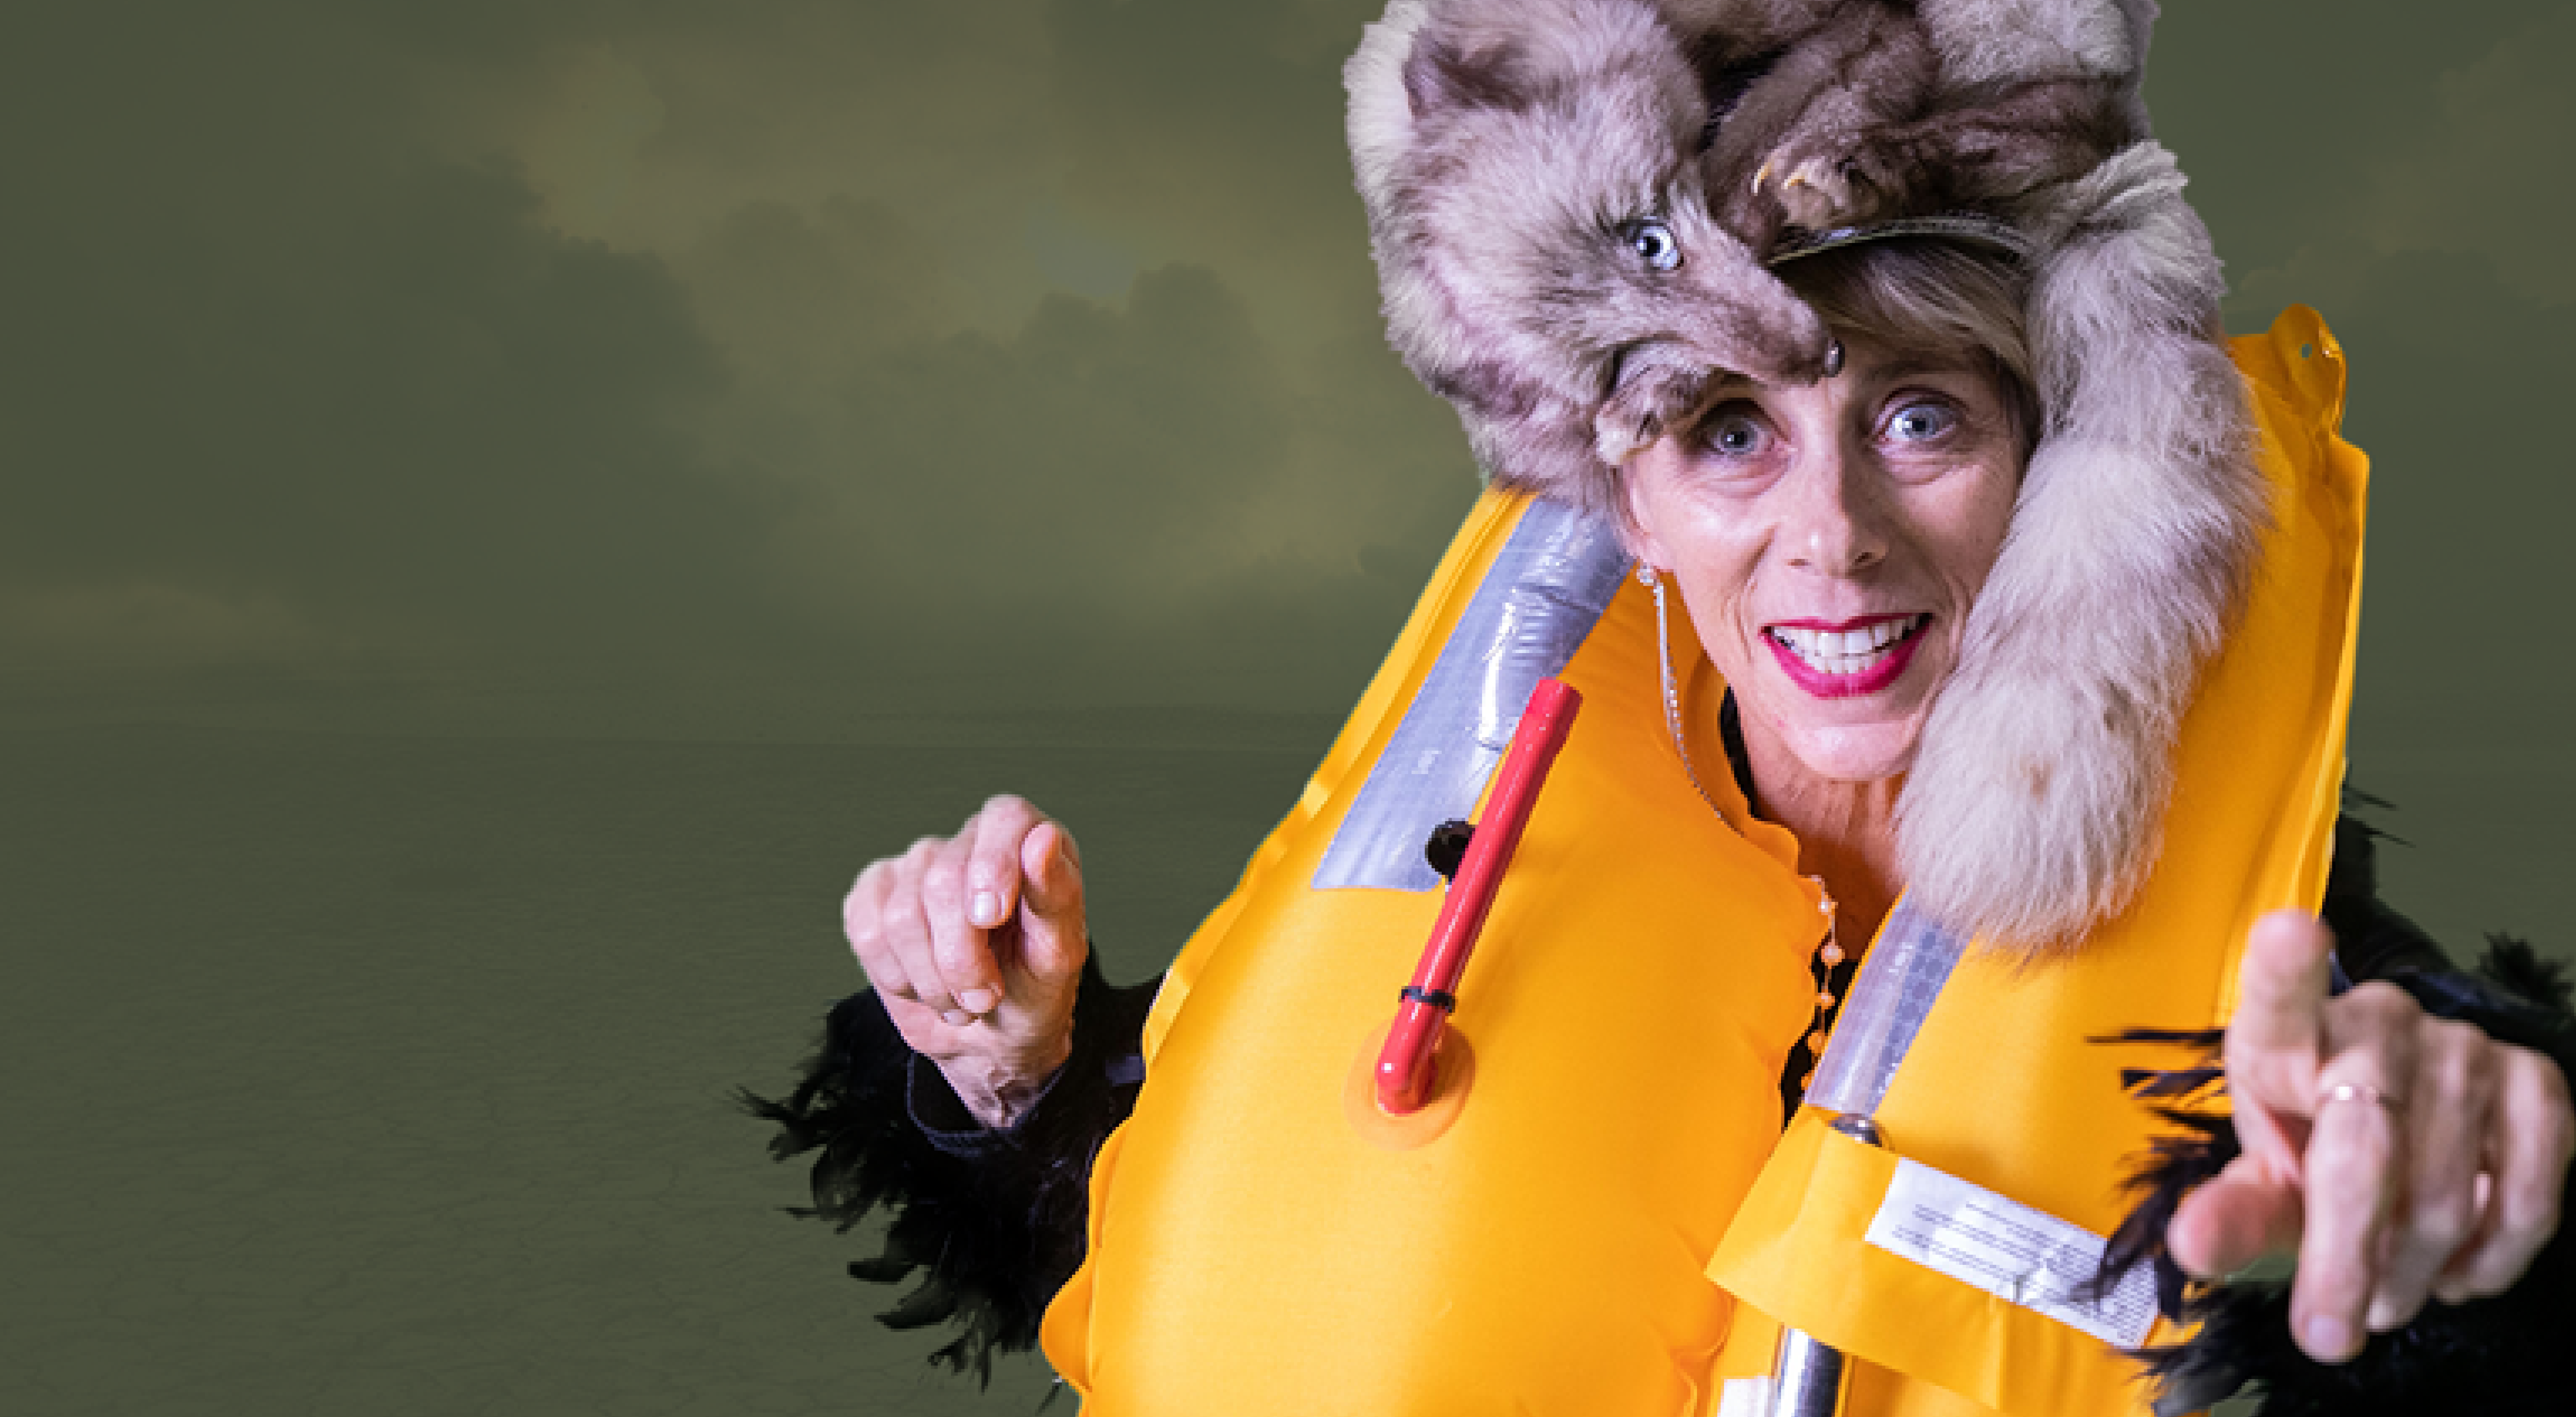 a photo of a perfomer with a ridiculous fur hat and a life jacket